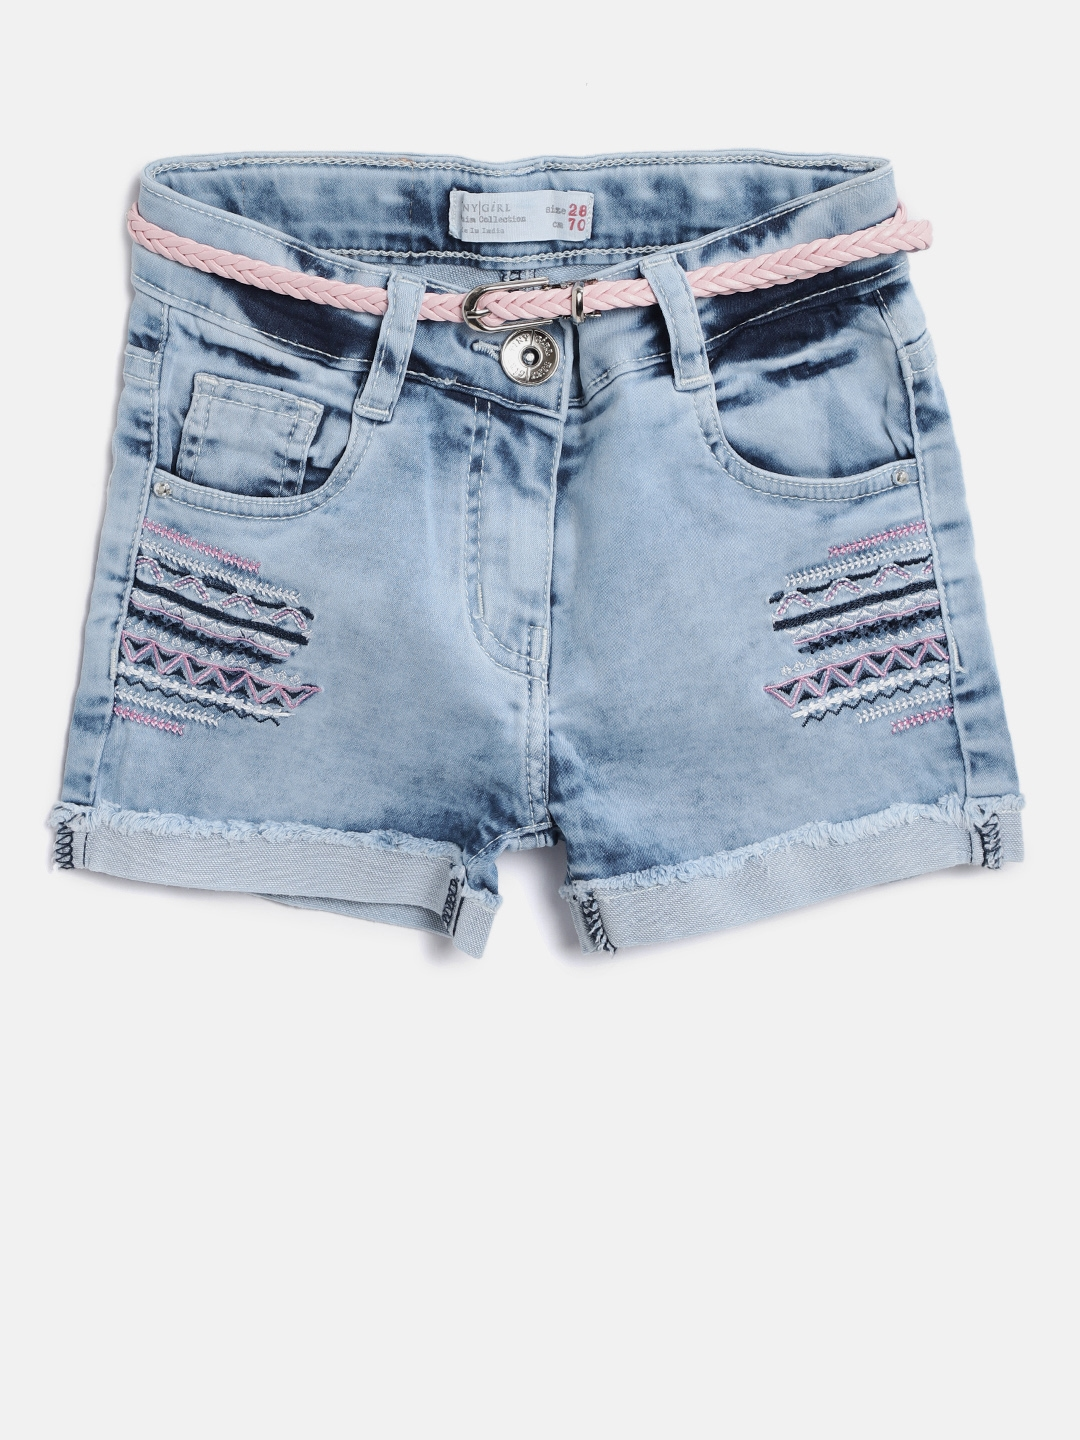 491a00b335 Buy Tiny Girl Blue Washed Regular Fit Denim Shorts - Shorts for ...